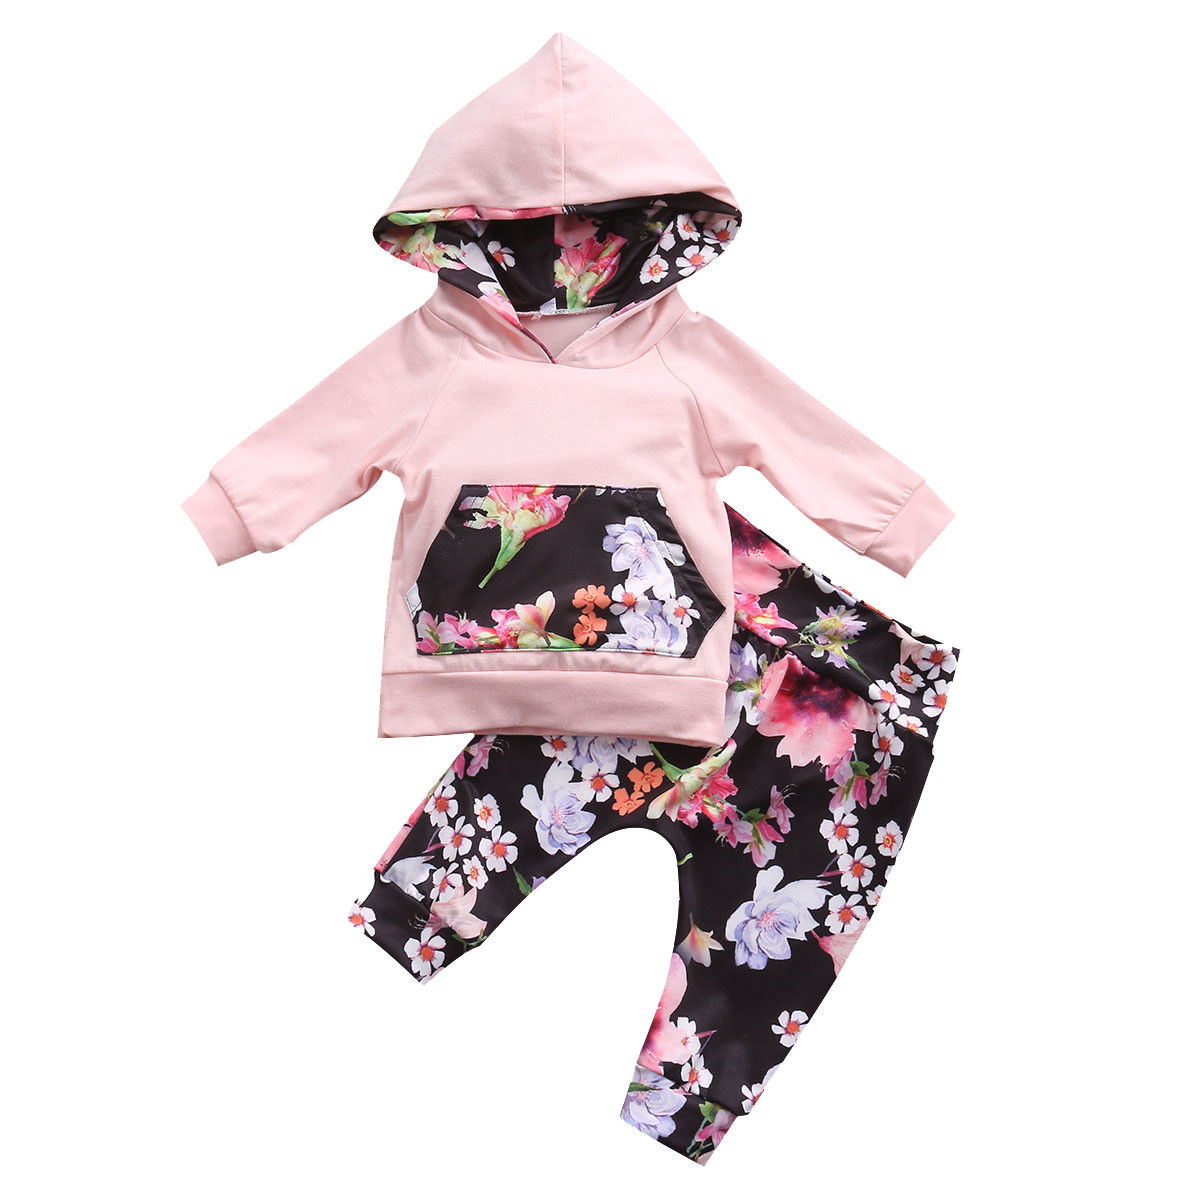 Infant Newborn Baby Girls Clothes Set Hooded Tops Long Sleeve T-shirt Floral Long Leggings Outfit Children Clothing Autumn 2PCs pink newborn infant baby girls clothes short sleeve bodysuit striped leg warmers headband 3pcs outfit bebek clothing set 0 18m